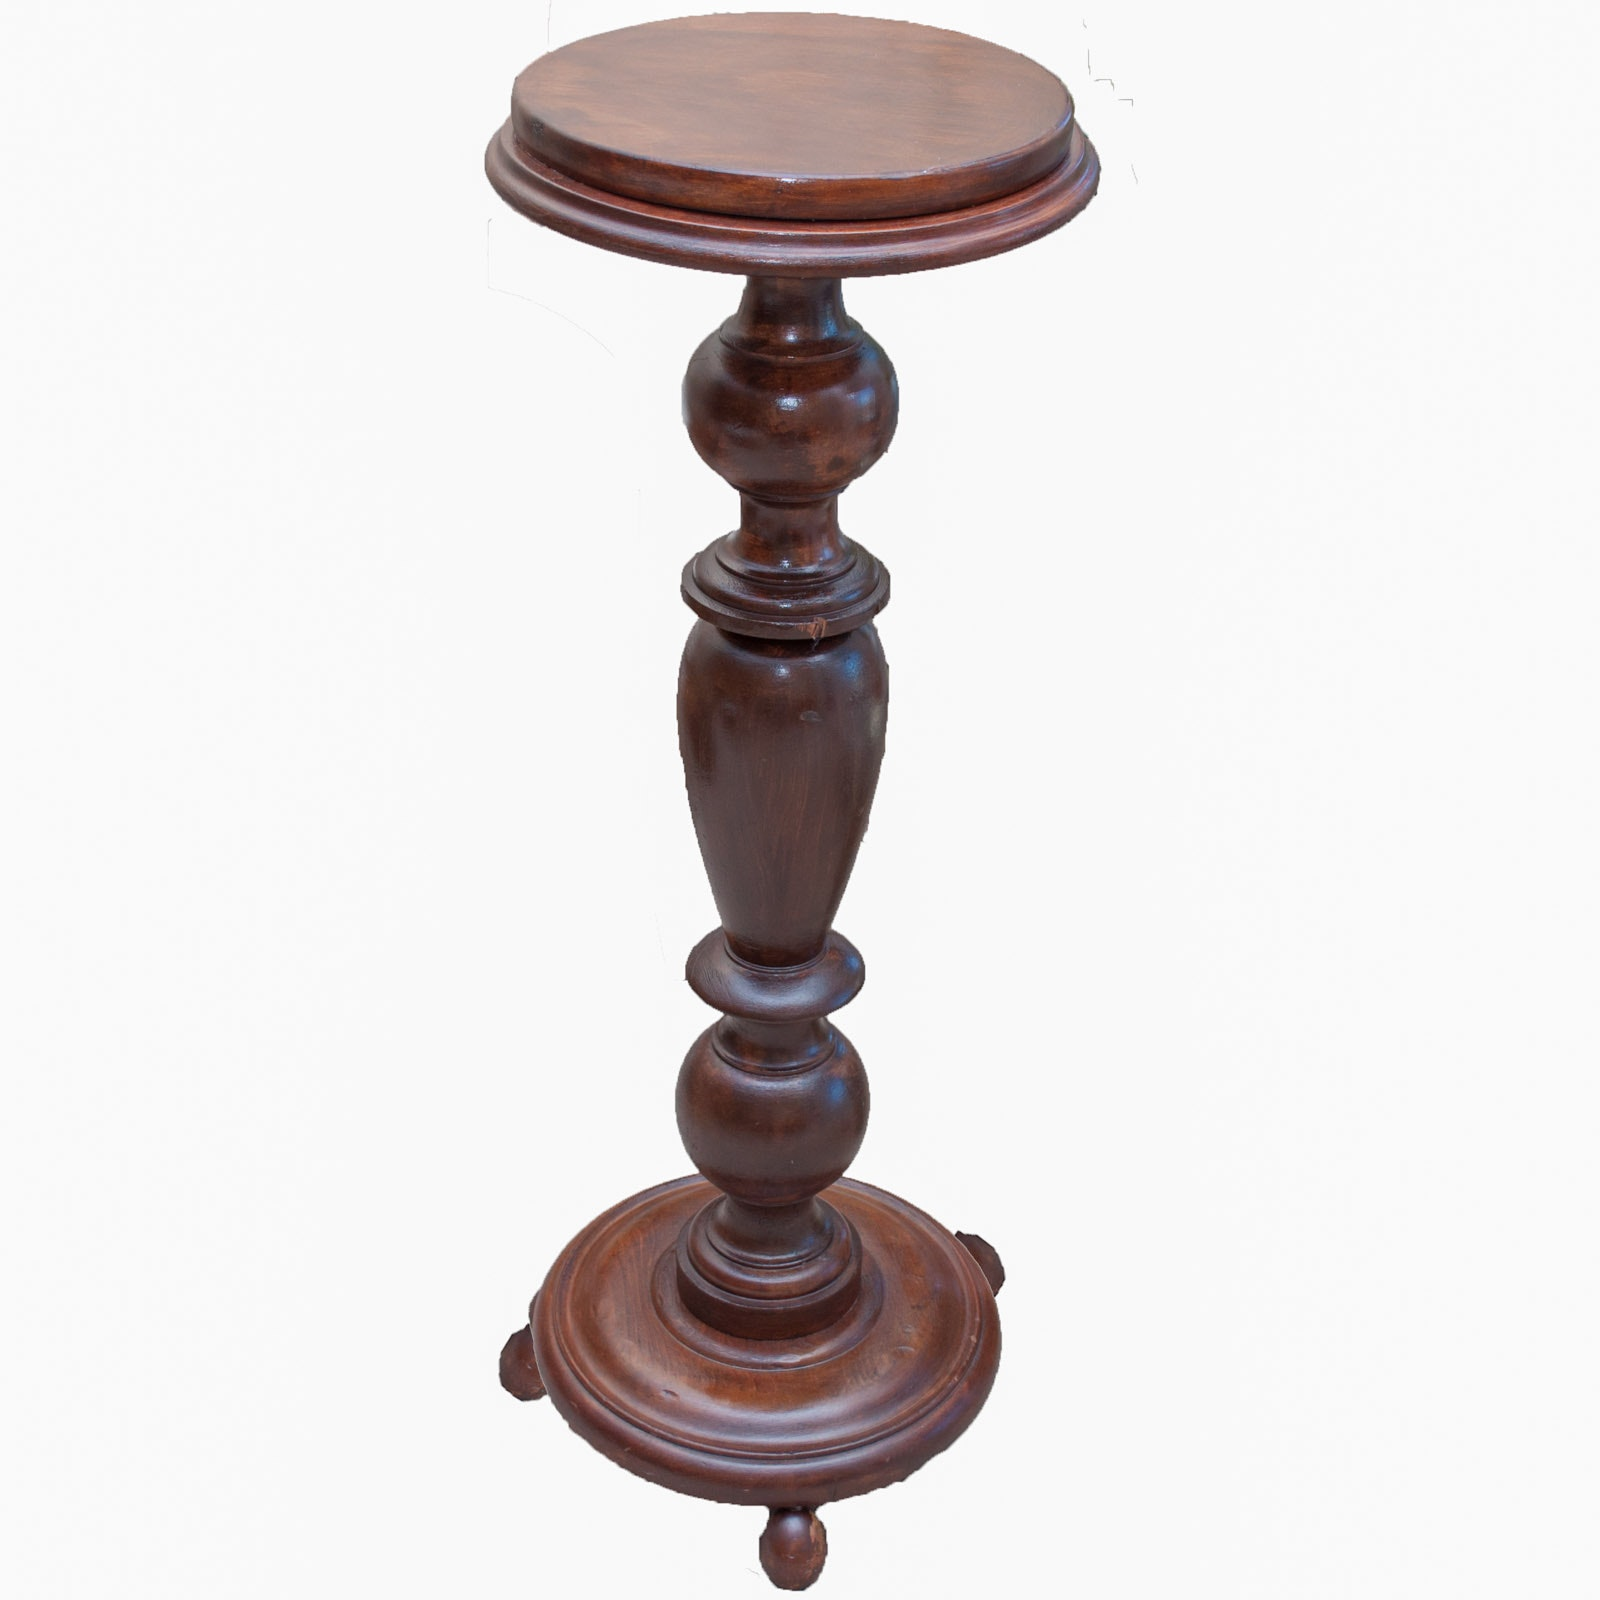 Antique Tall Turned Wood Pedestal